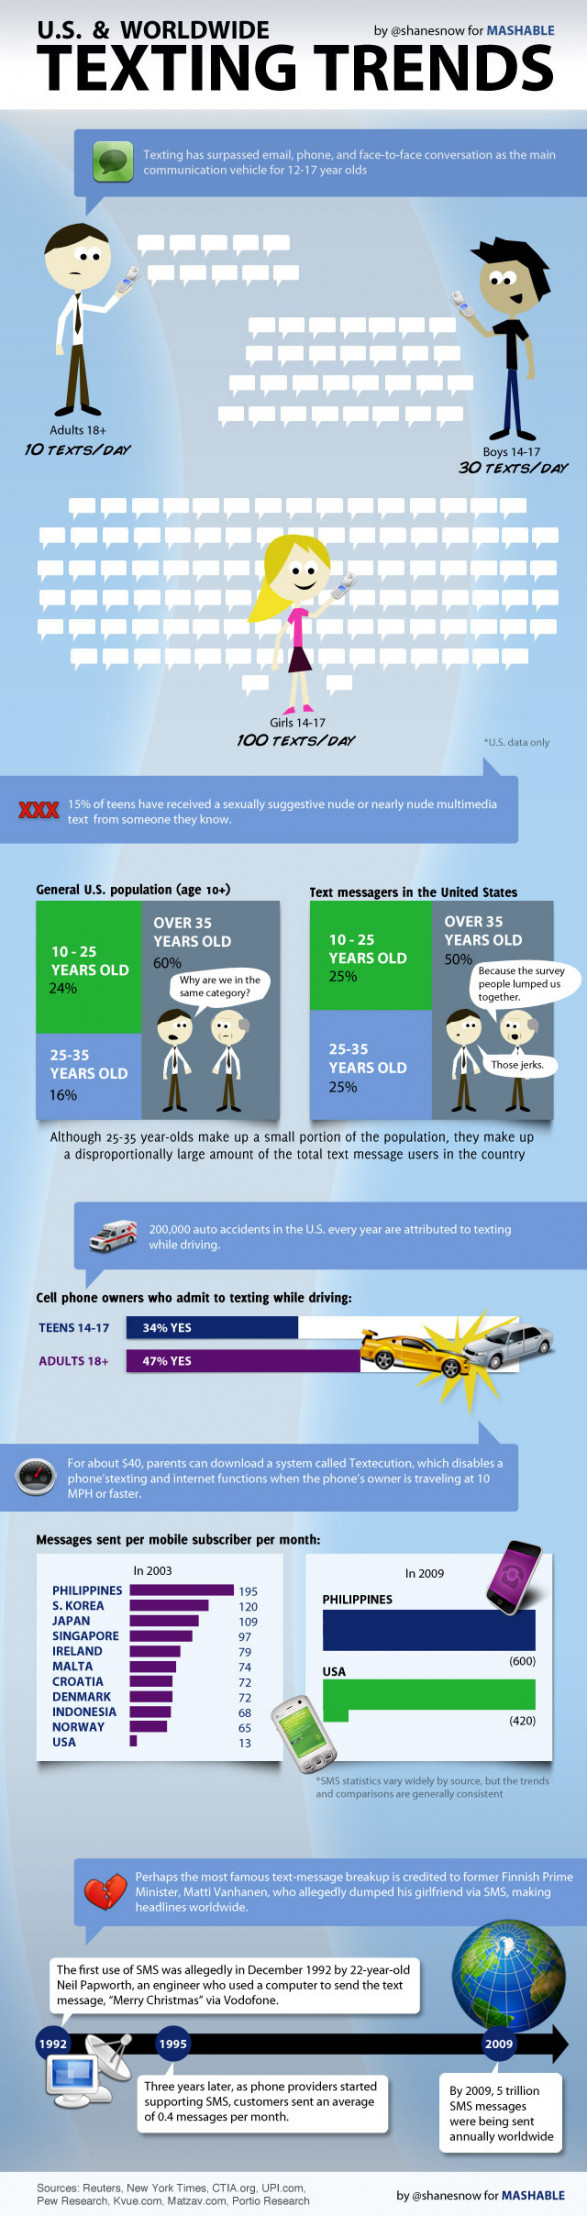 US & Worldwide Texting Trends